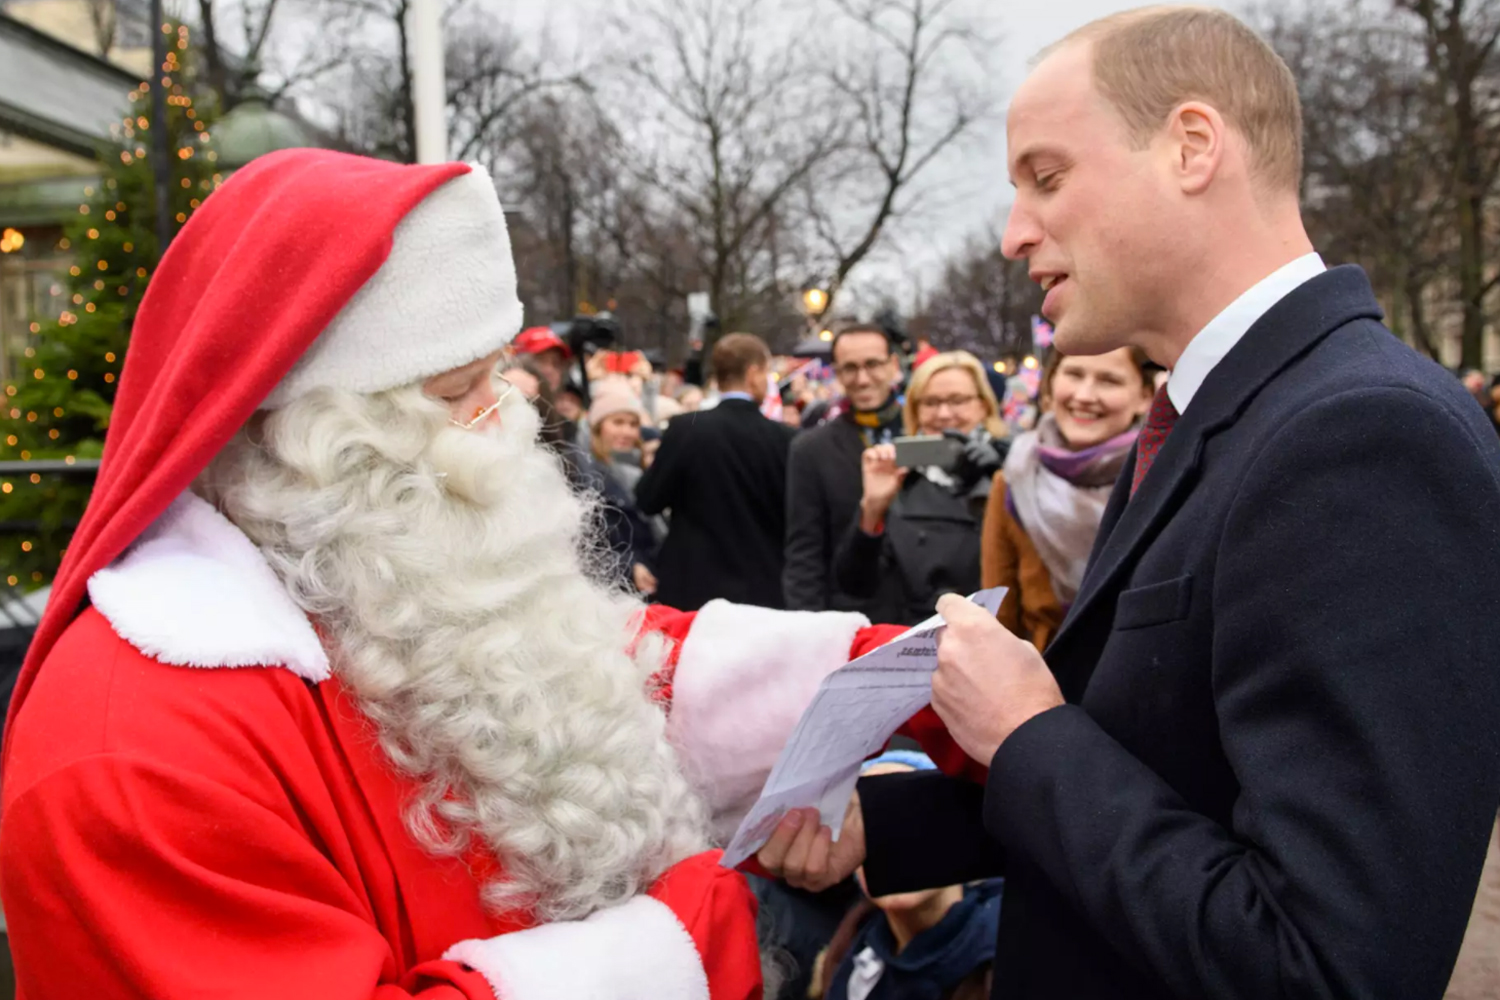 Prince George asks Santa for police auto